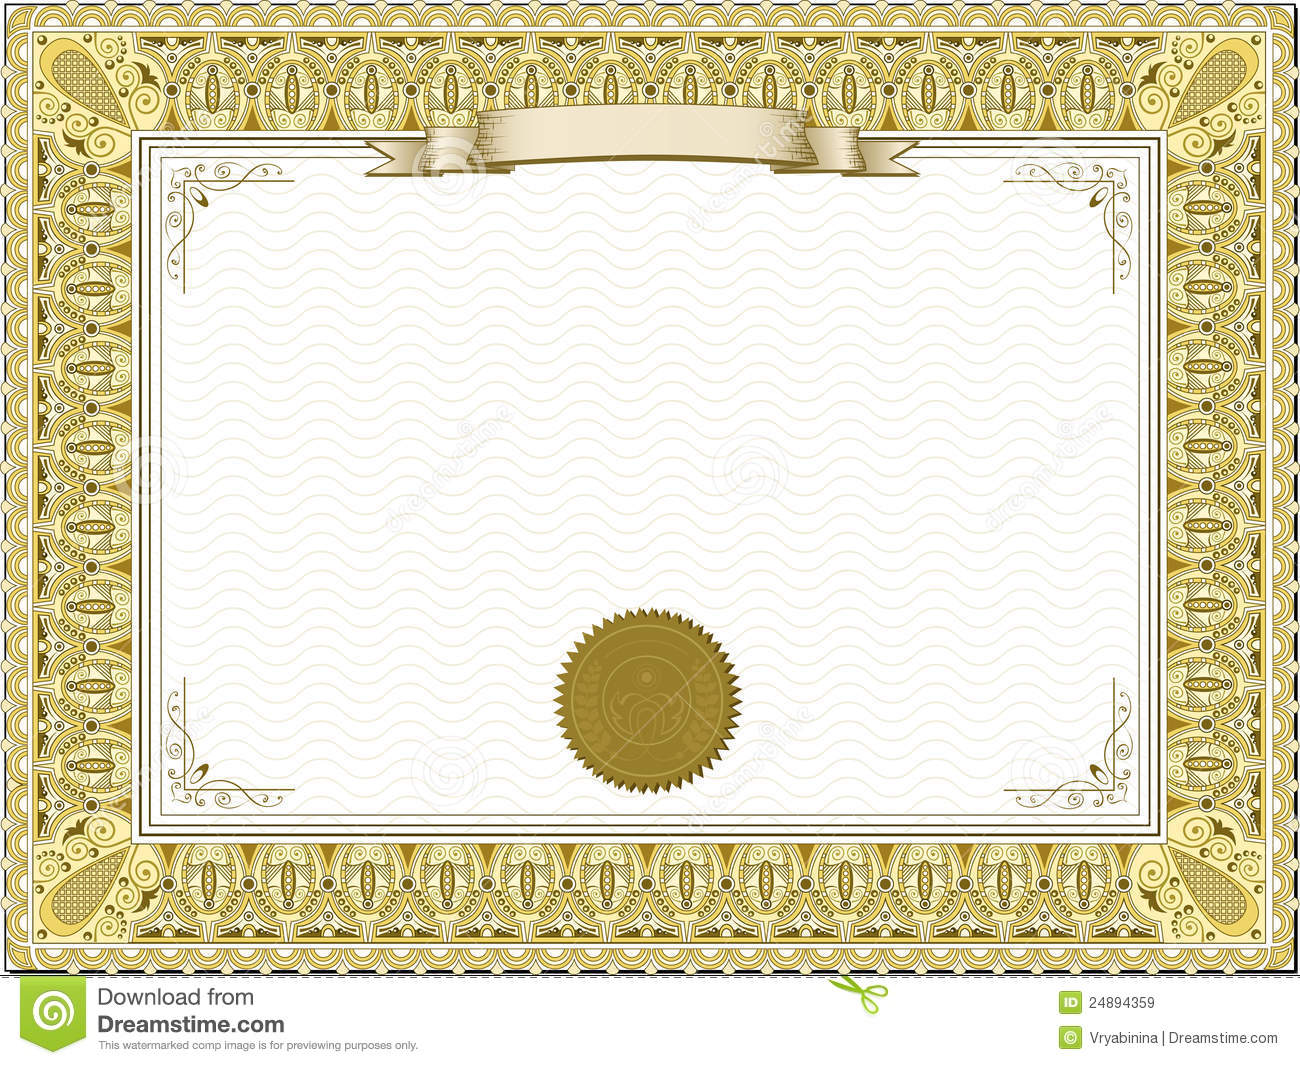 Gold Detailed Certificate Royalty Free Stock Images Image: 24894359